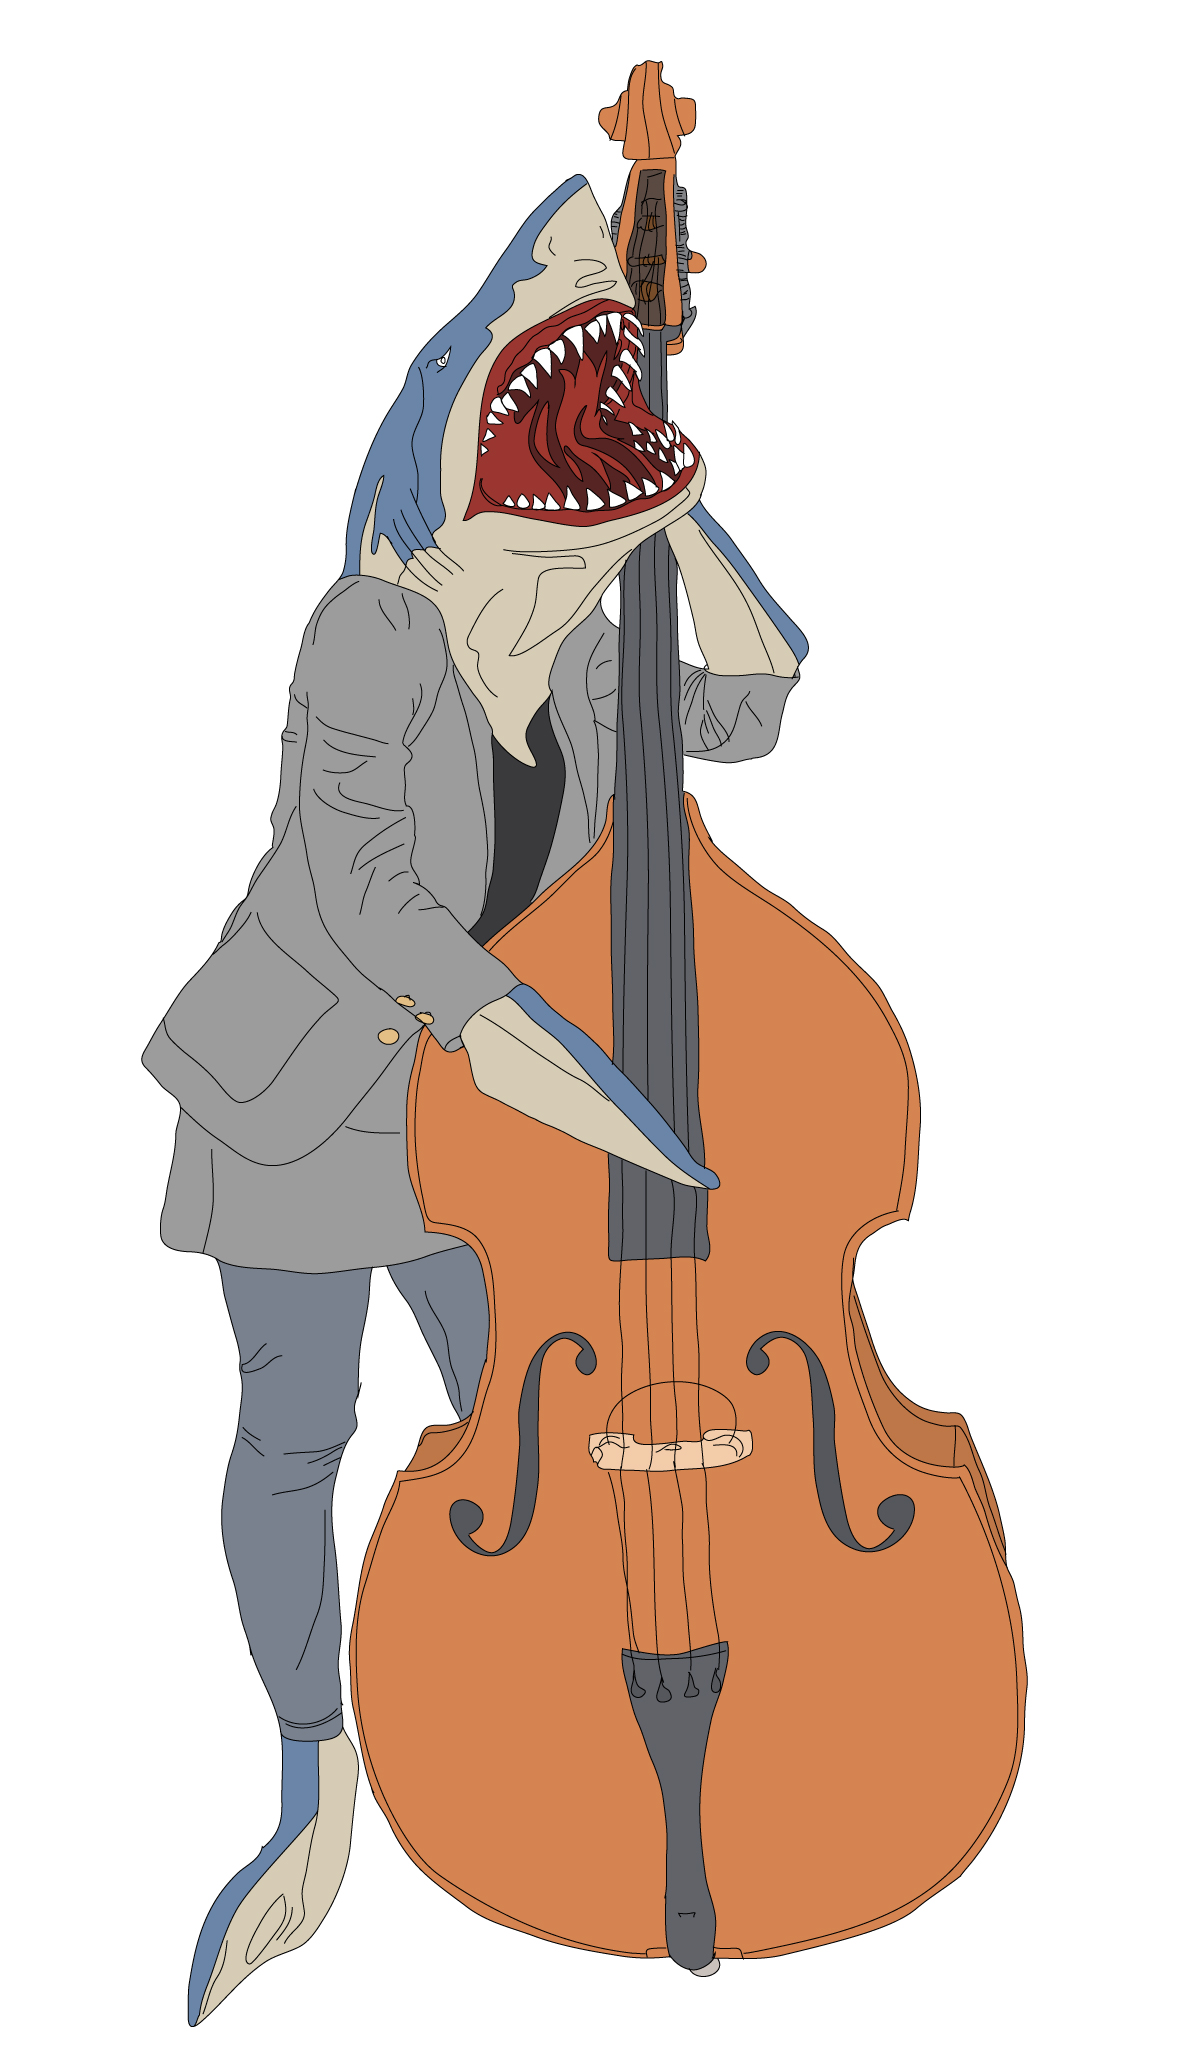 Digital Illustration of Surreal Shark Bass Player